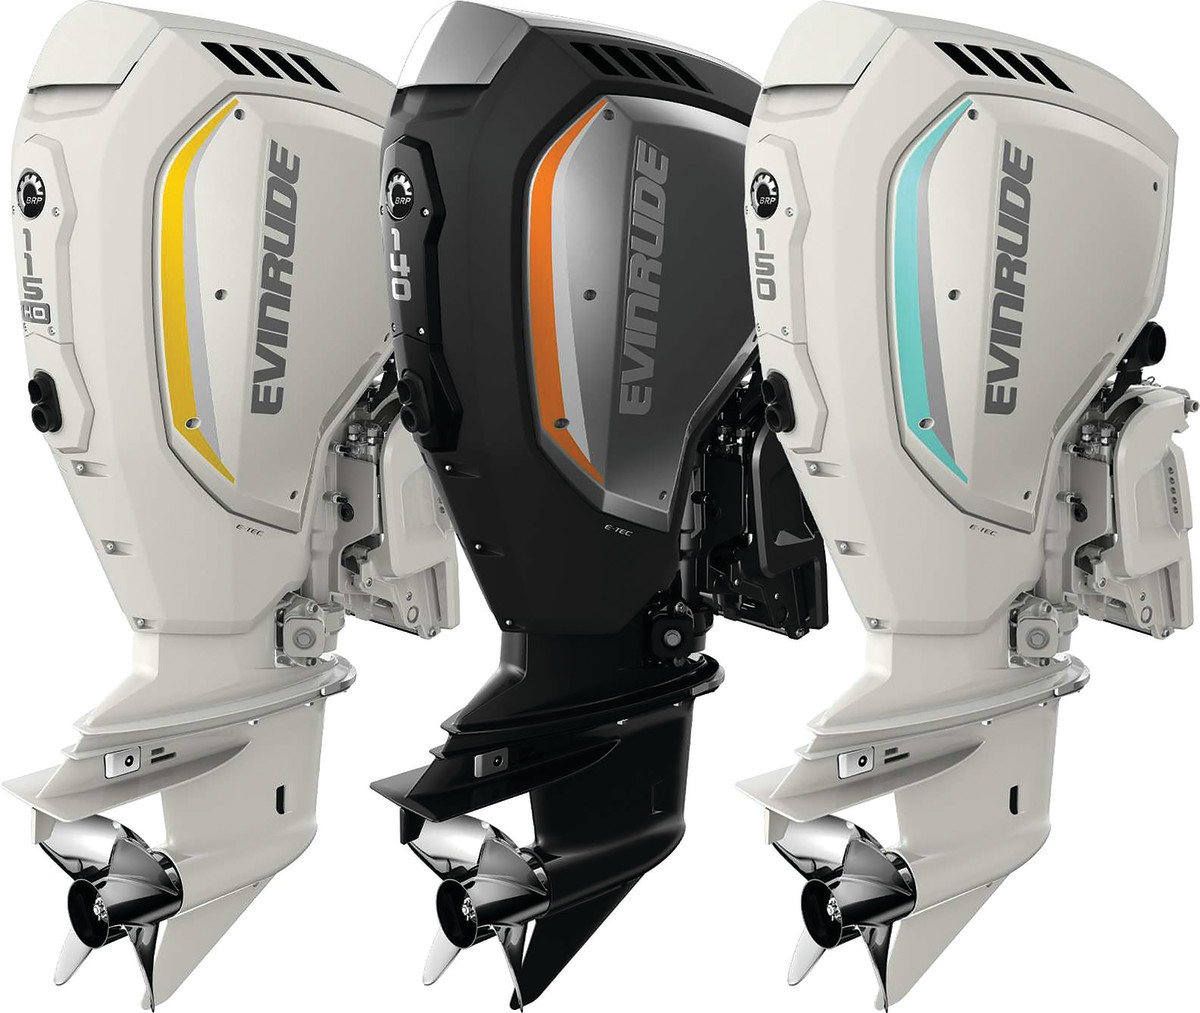 Some color options from the 2020, and final, Evinrude model line.